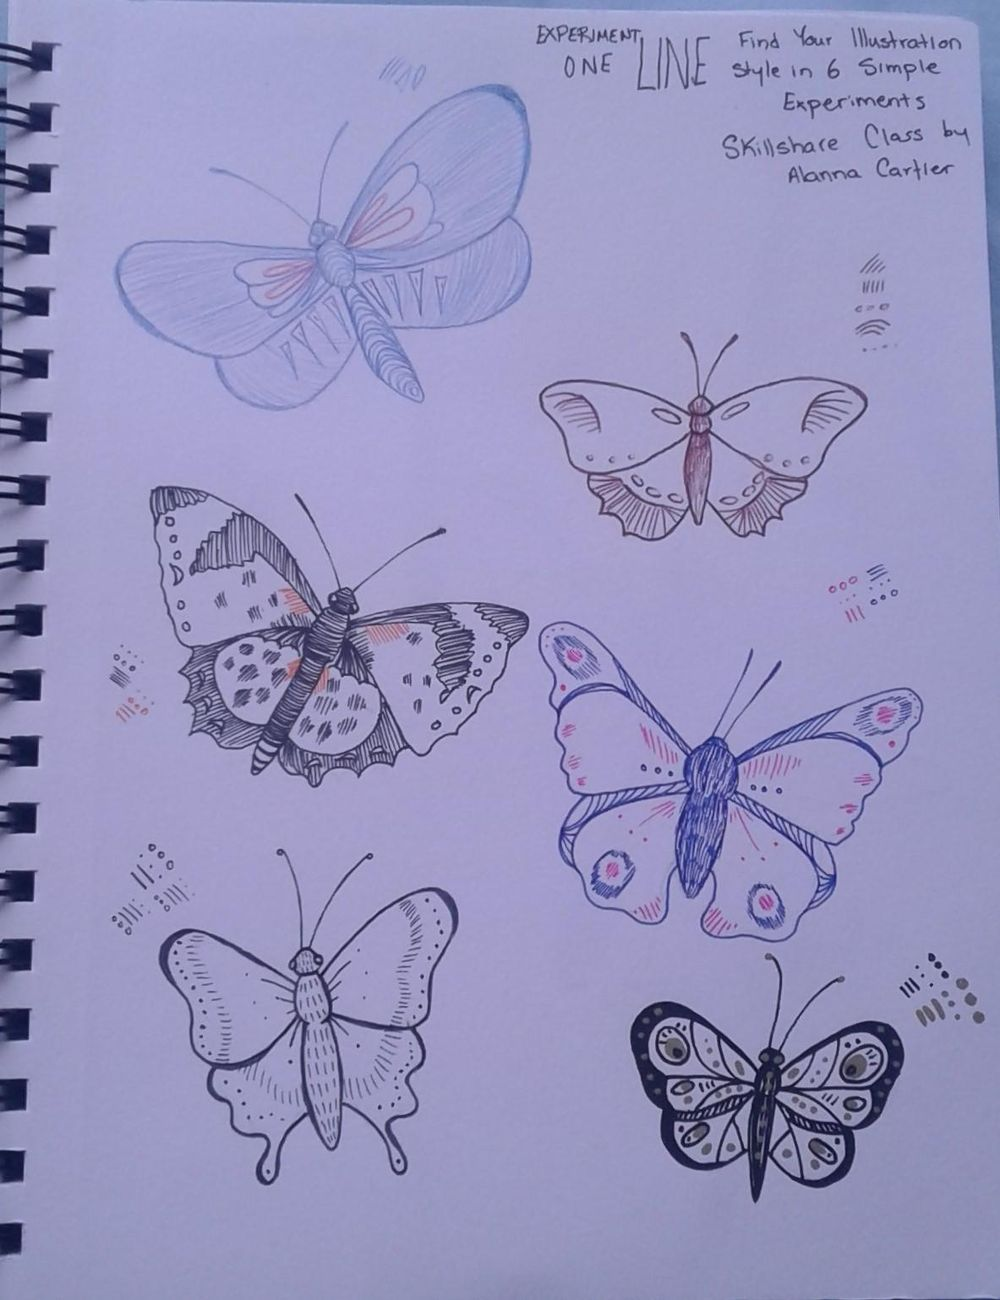 Finding My Illistration Style in 6 Simple Experiments - image 1 - student project